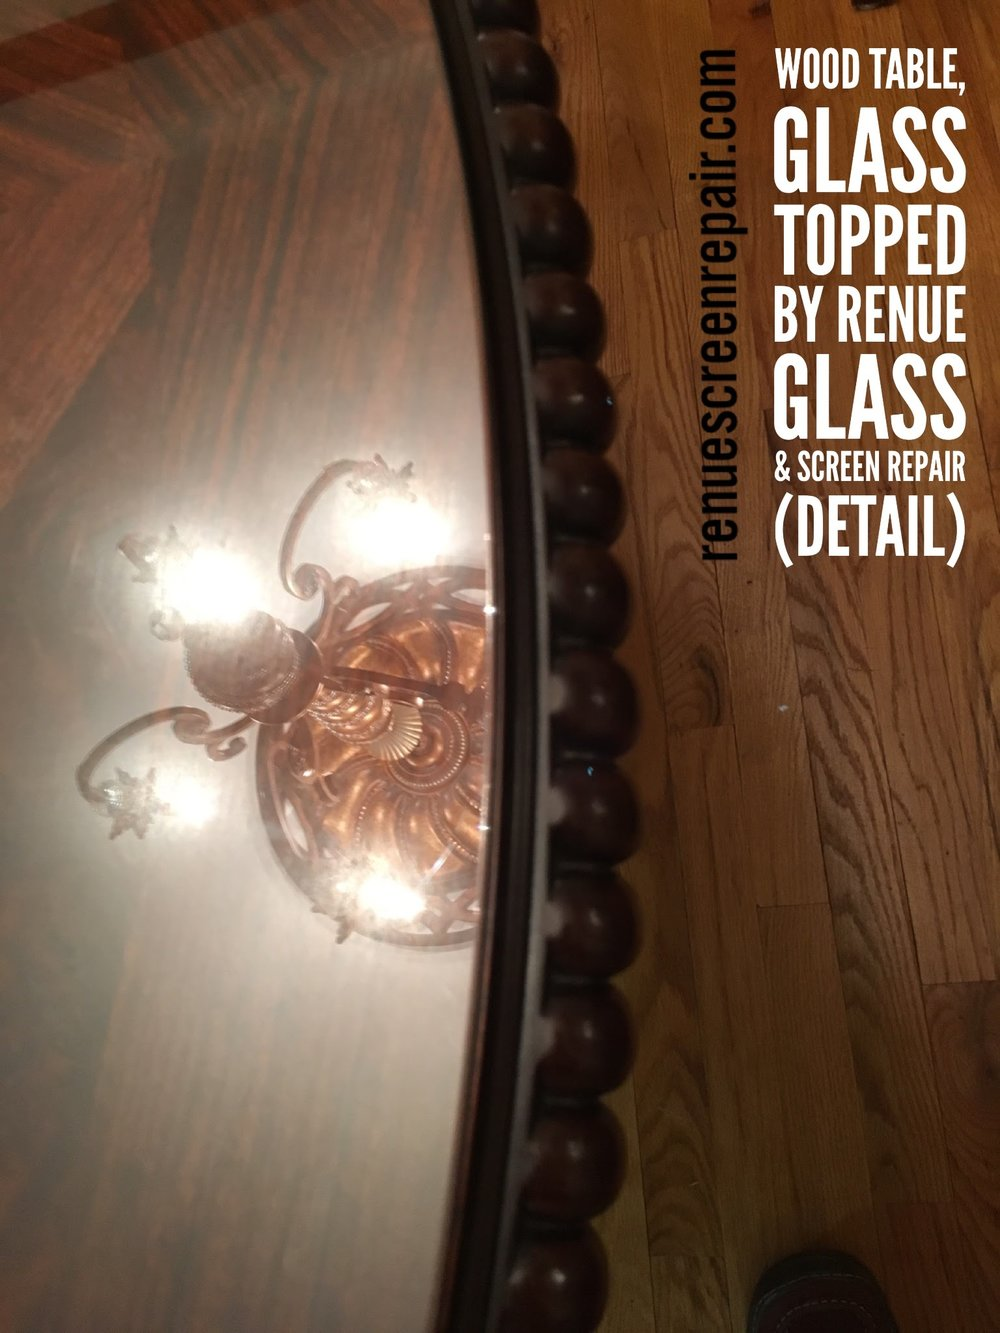 Renue Glass and Screen Repair Dining Room Table Detail